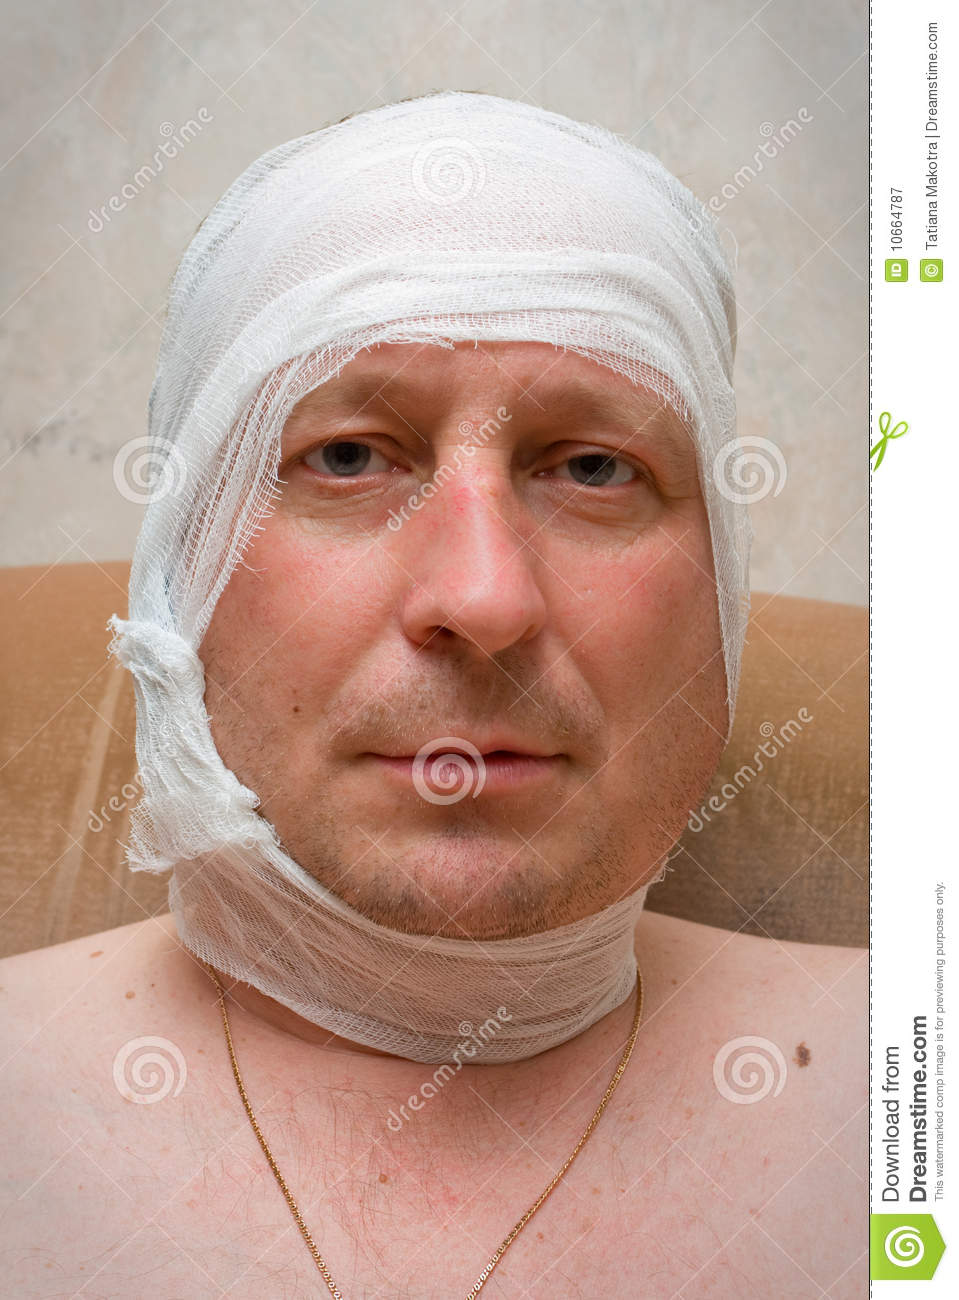 Man With Bandage On Head Royalty Free Stock Photography